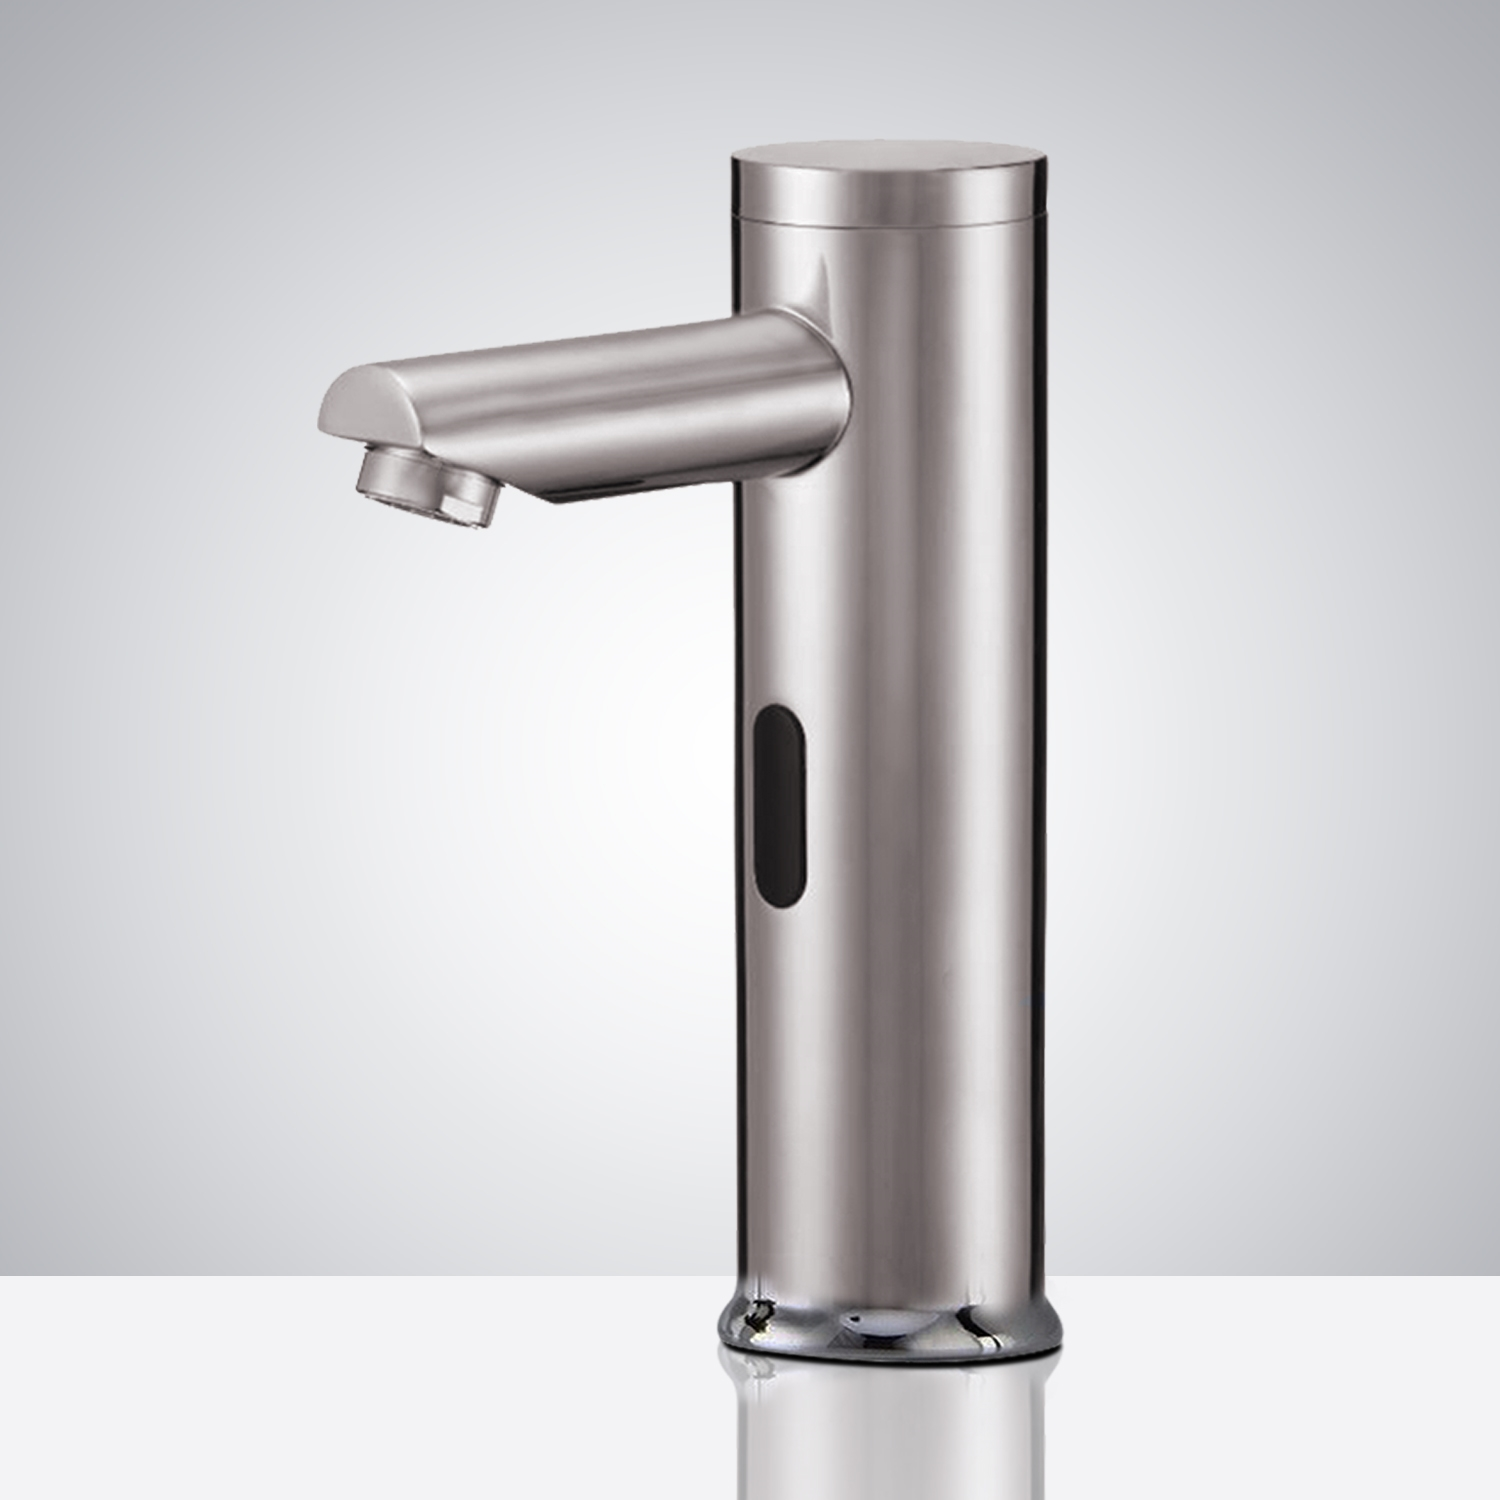 Fontana Brushed Nickel Commercial Thermostatic Automatic Sensor Solid Brass Faucet